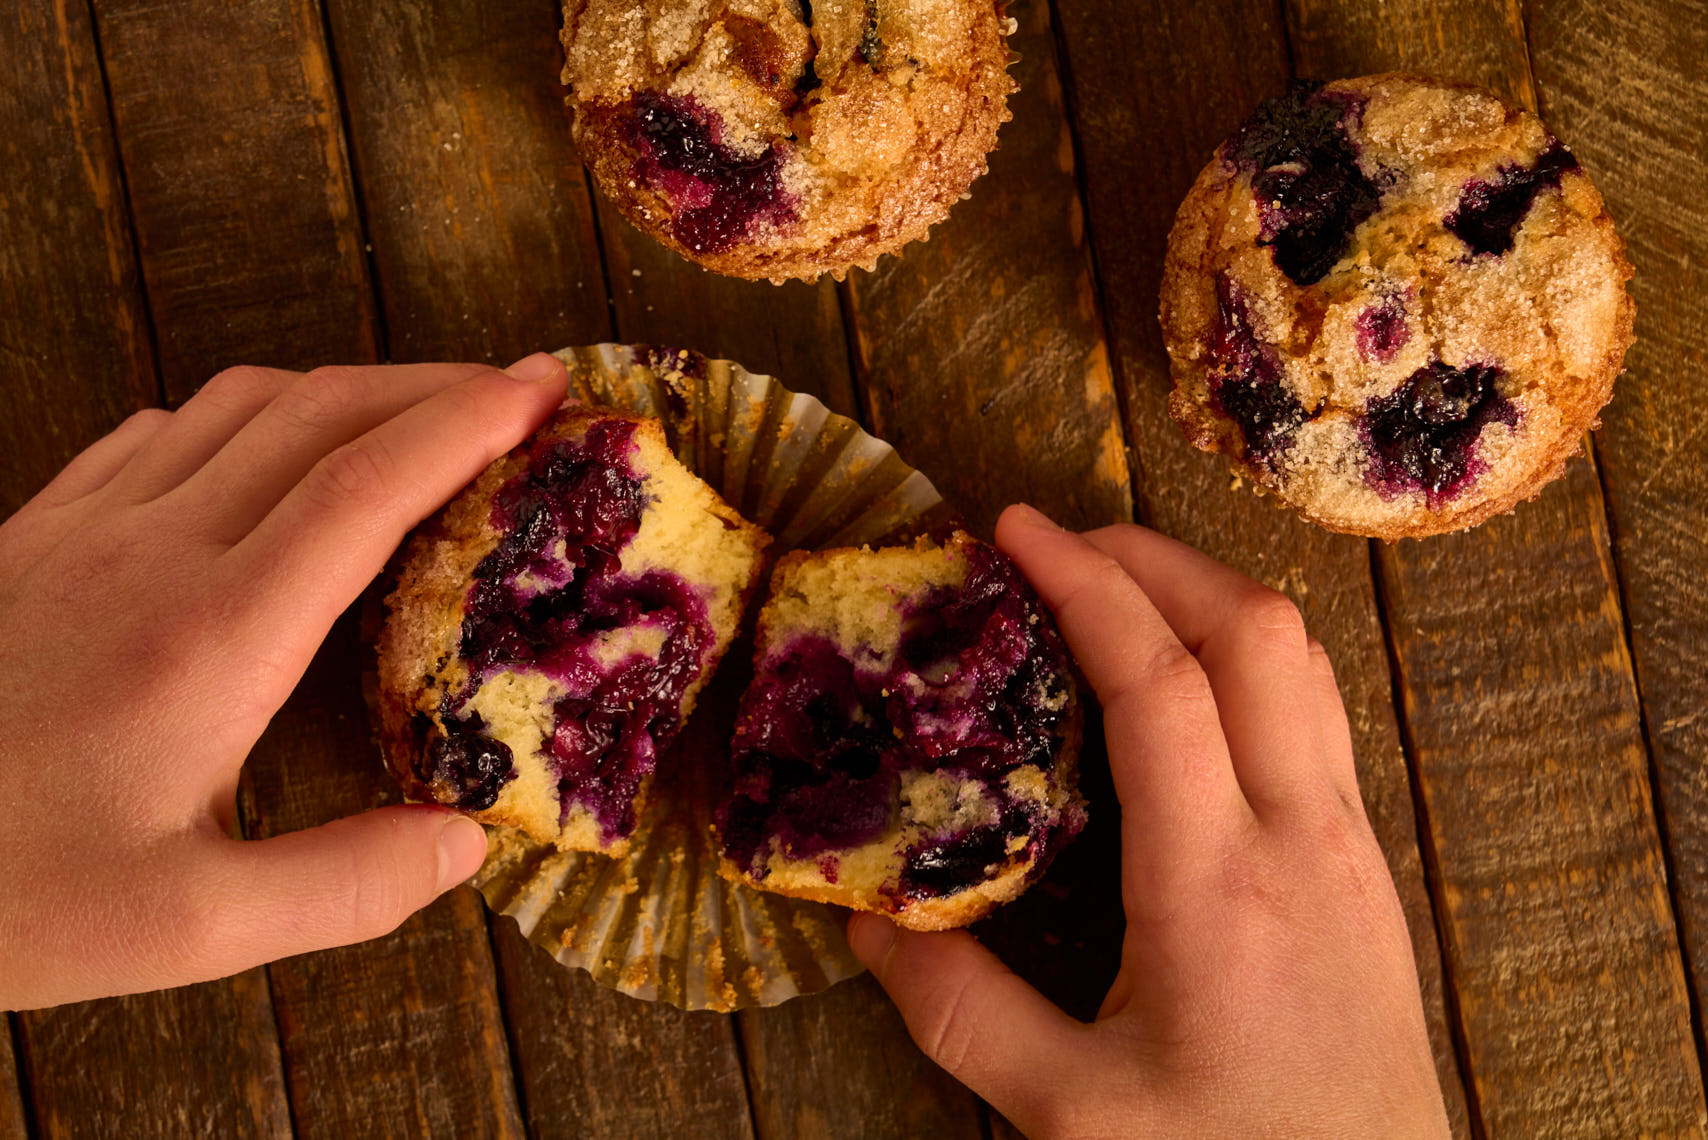 Blueberry Muffins - Food Photographer, Pennsylvania & New Jersey